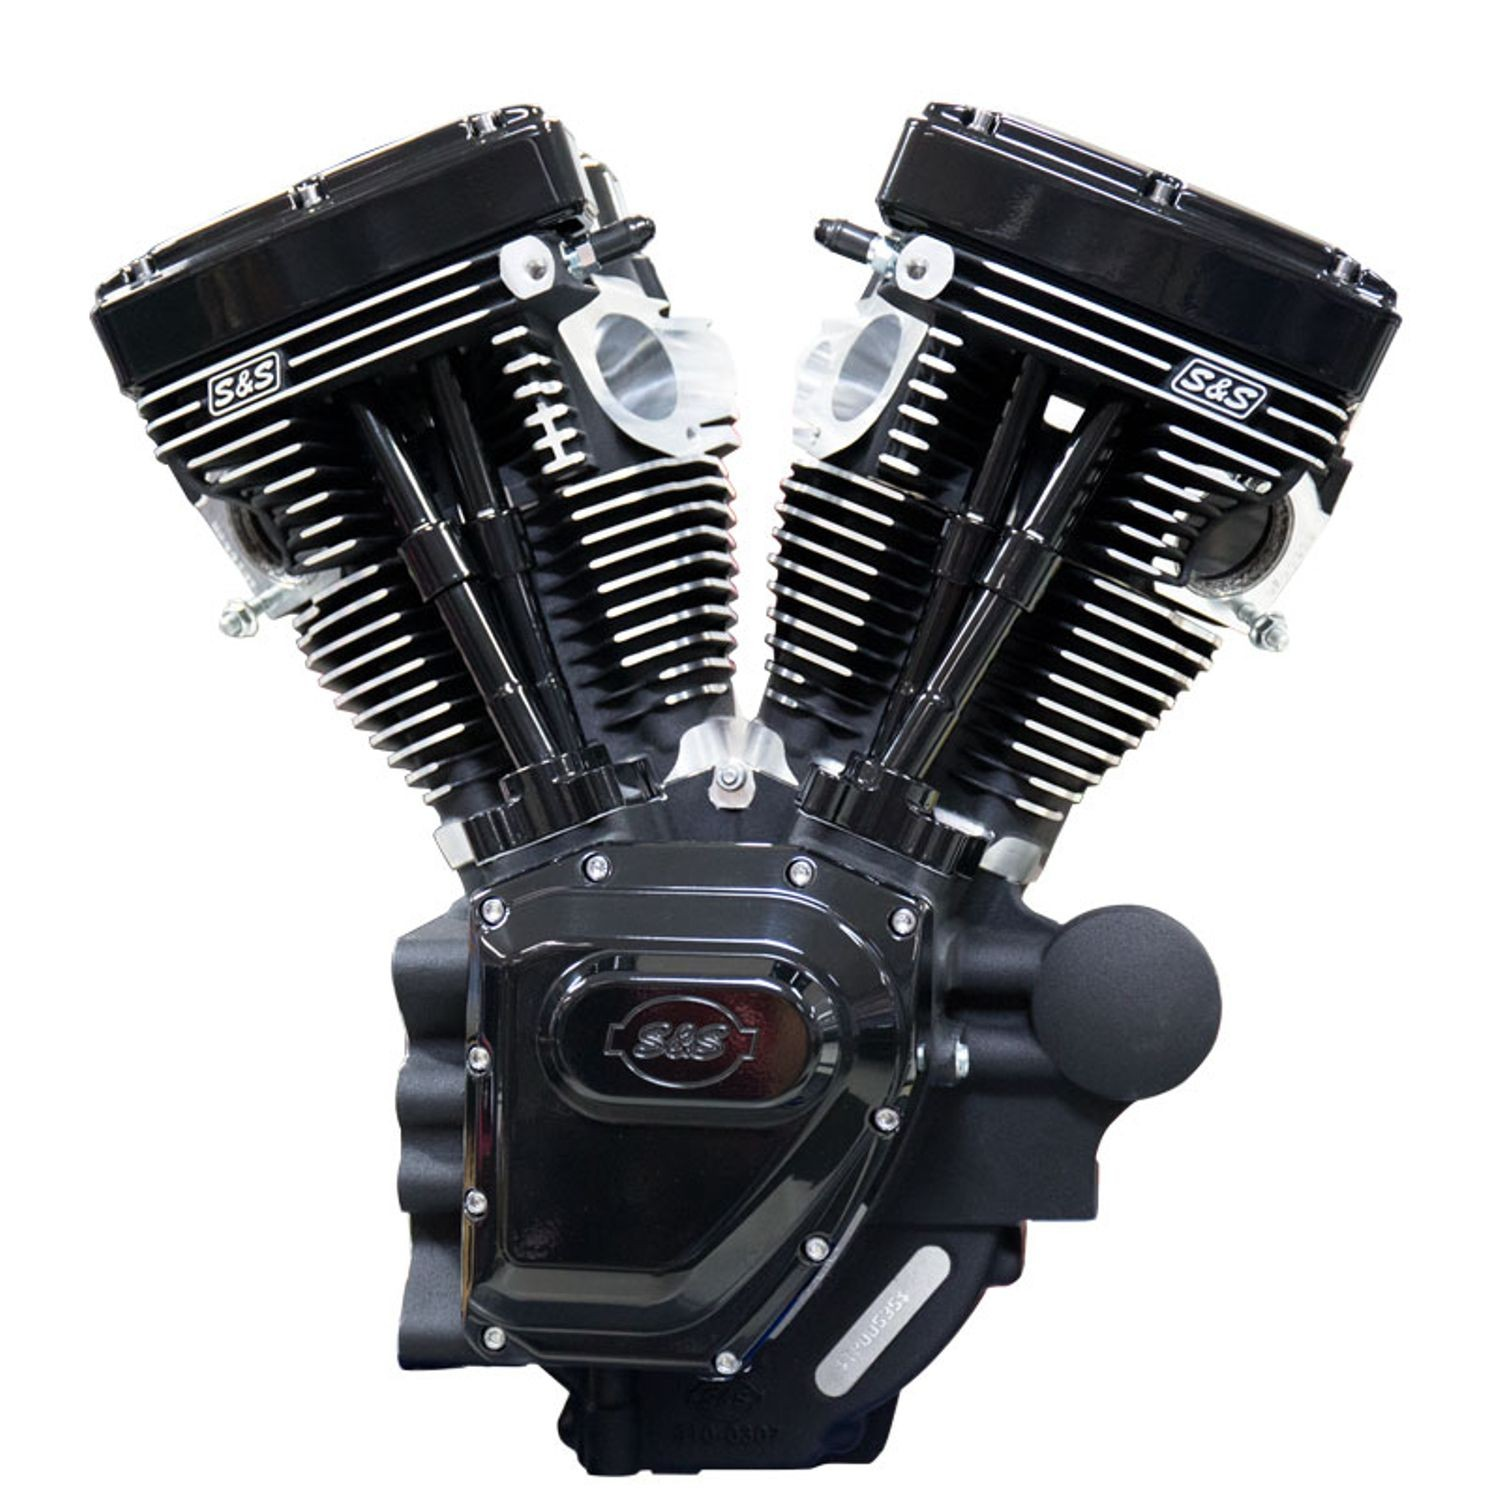 T111 Black Edition Longblock Engine for Select 2007-'16 HD® Twin Cam 96